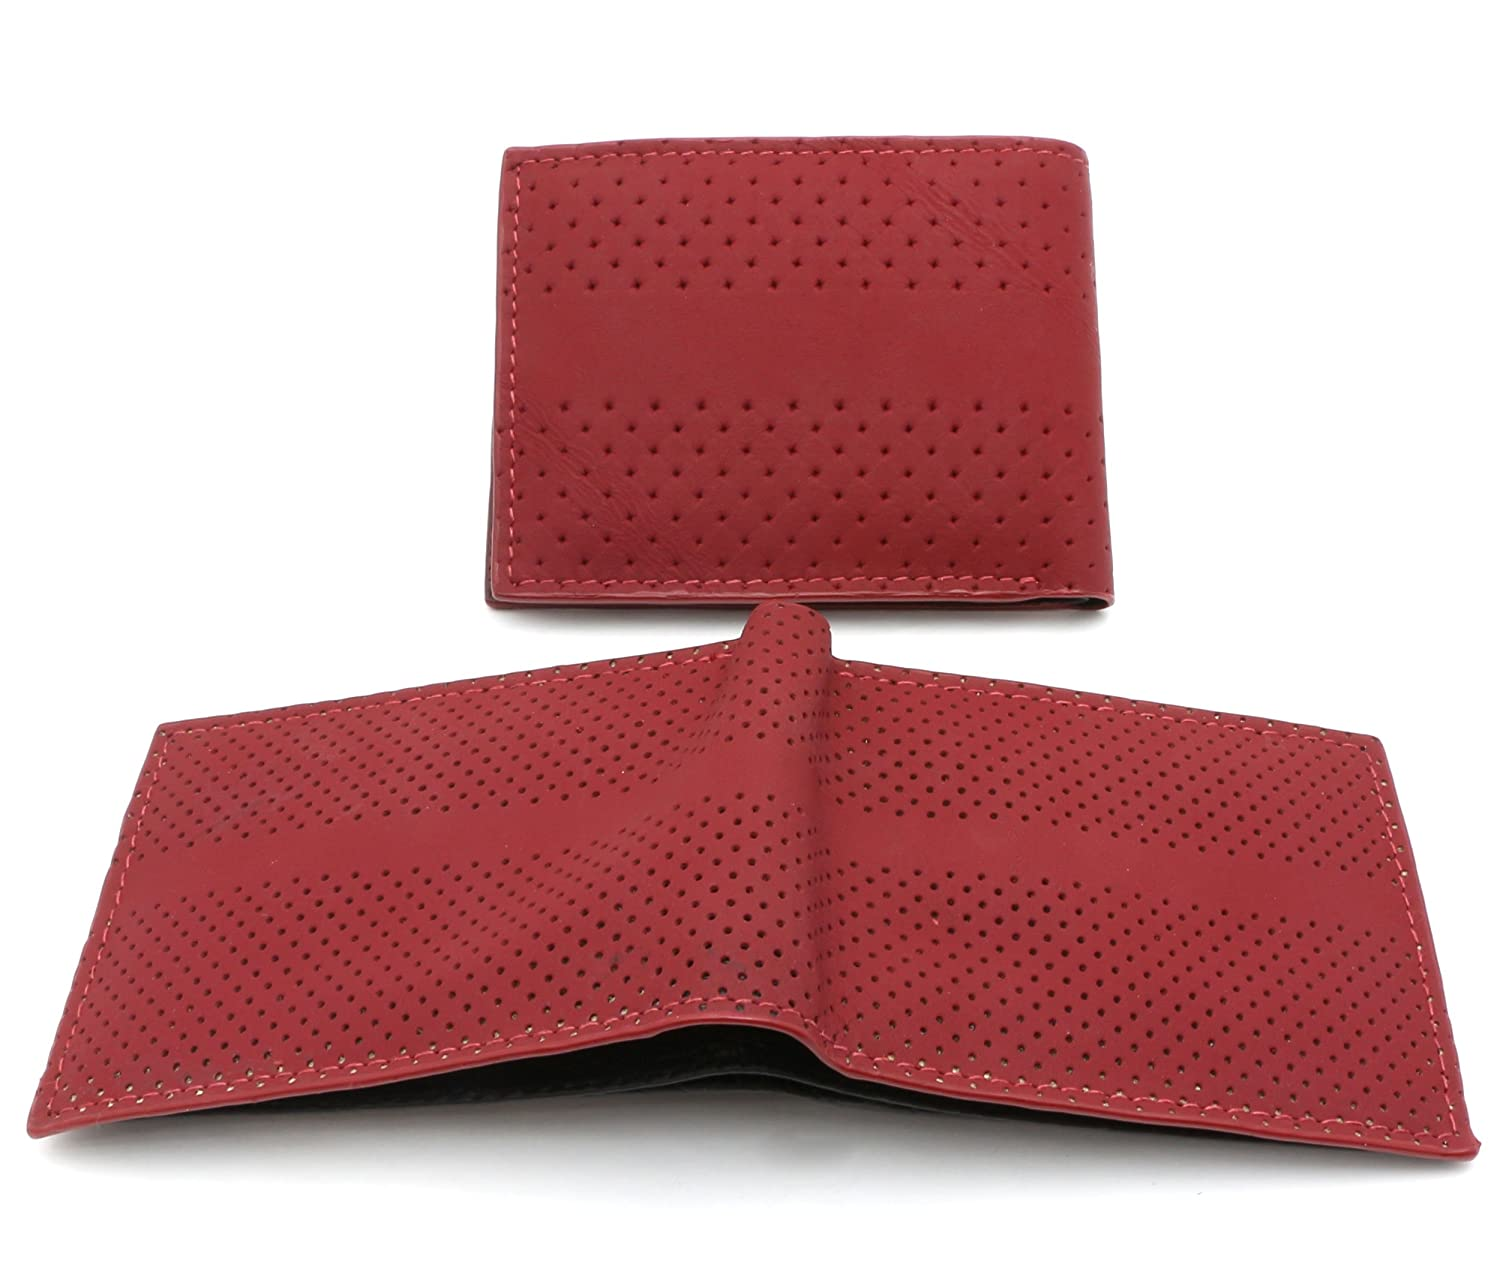 Bifold Maroon Red Genuine Leather Wallet Holed Design with a Detachable Flap